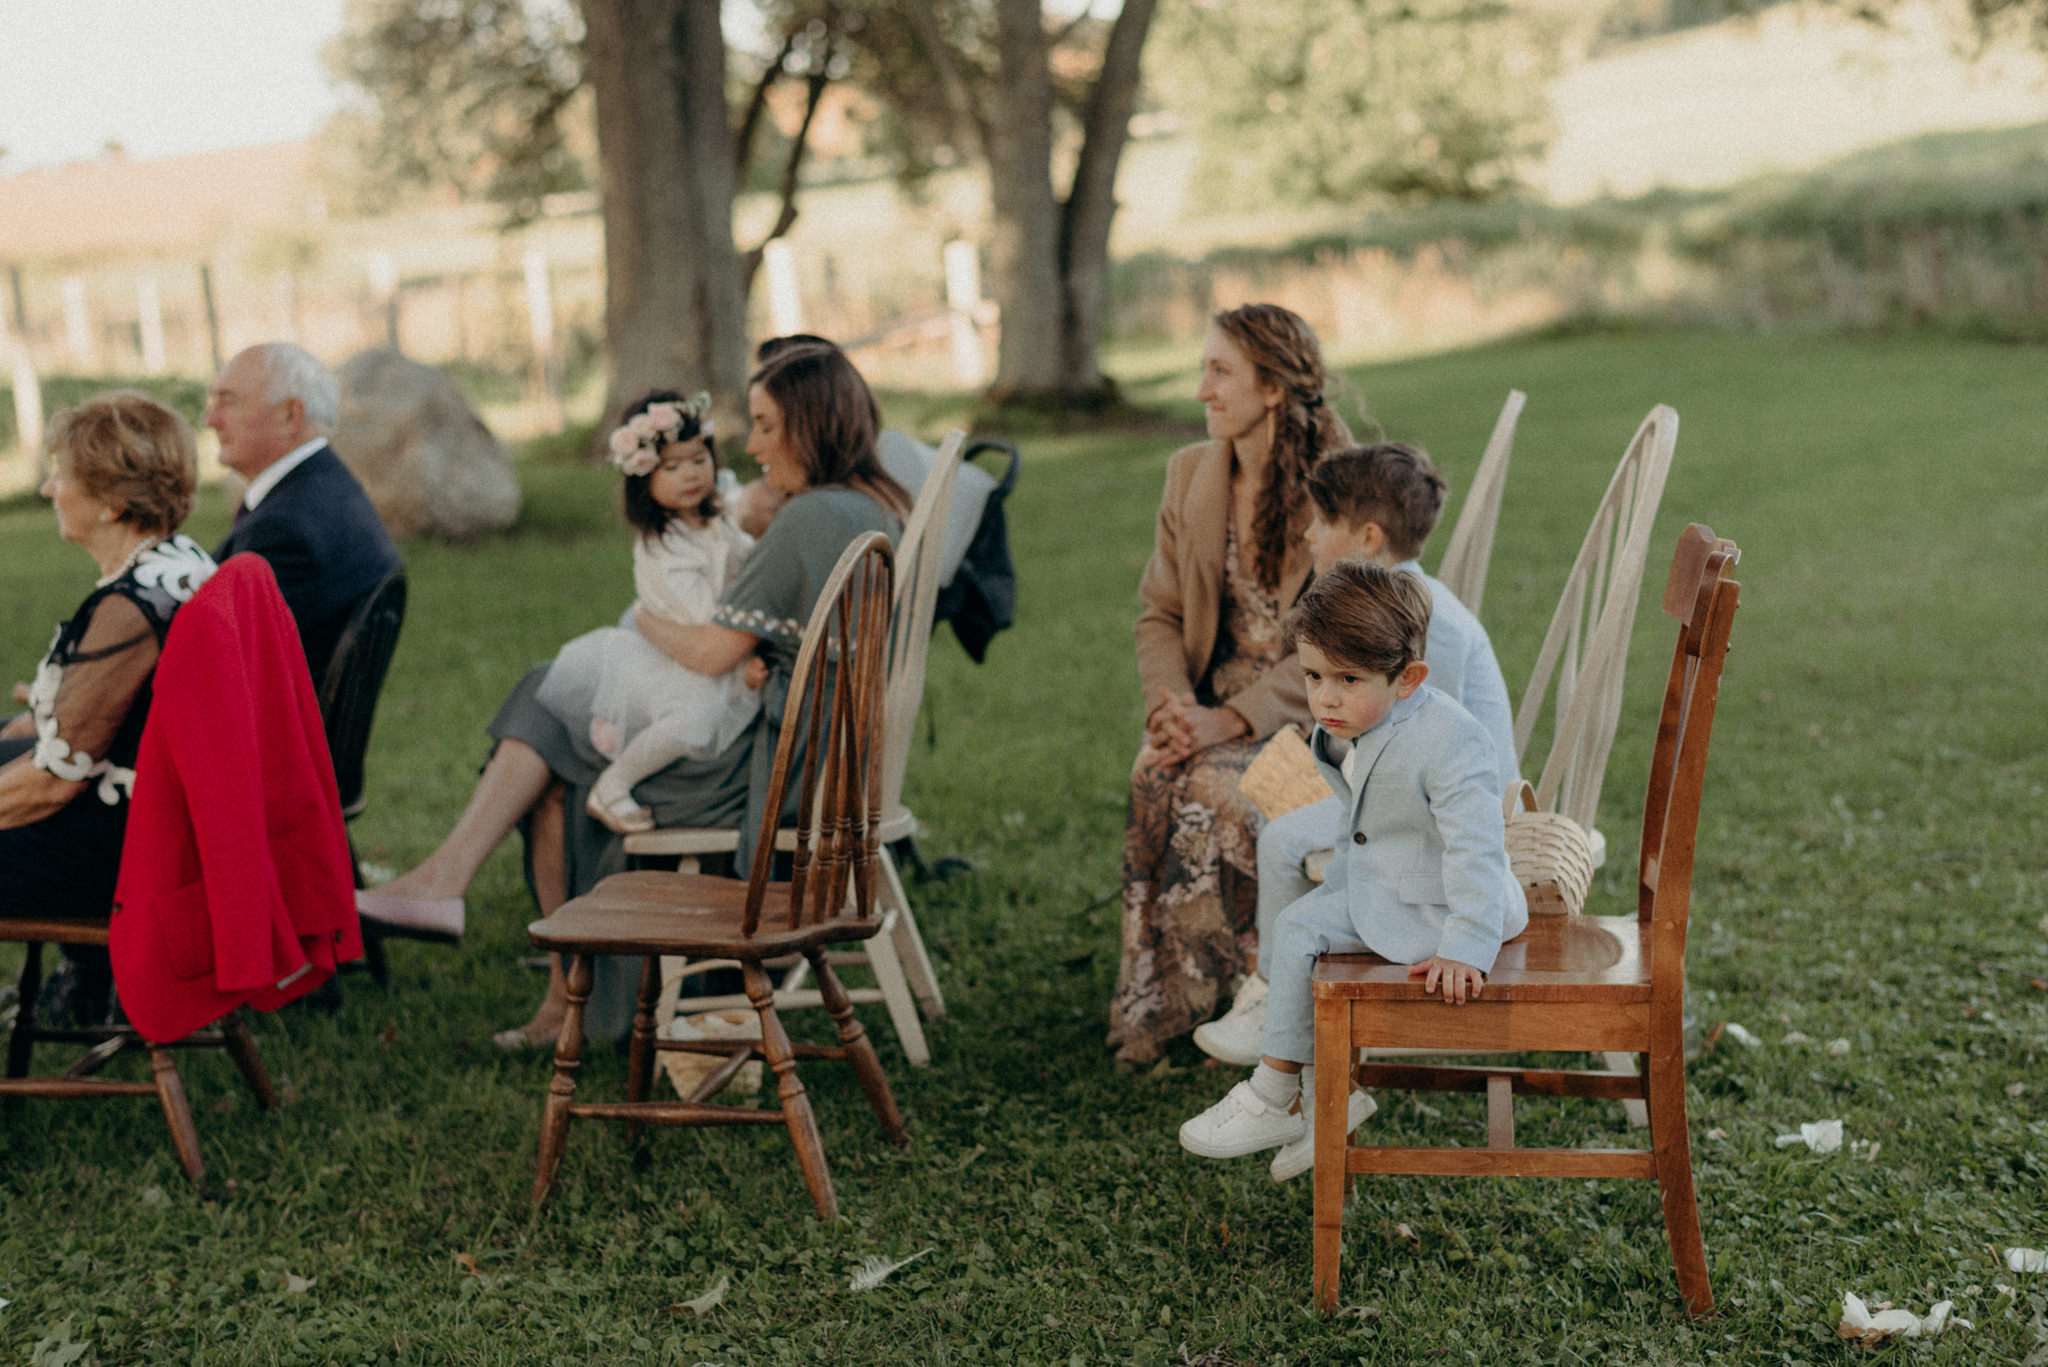 guests on mismatched chairs during outdoor wedding ceremony